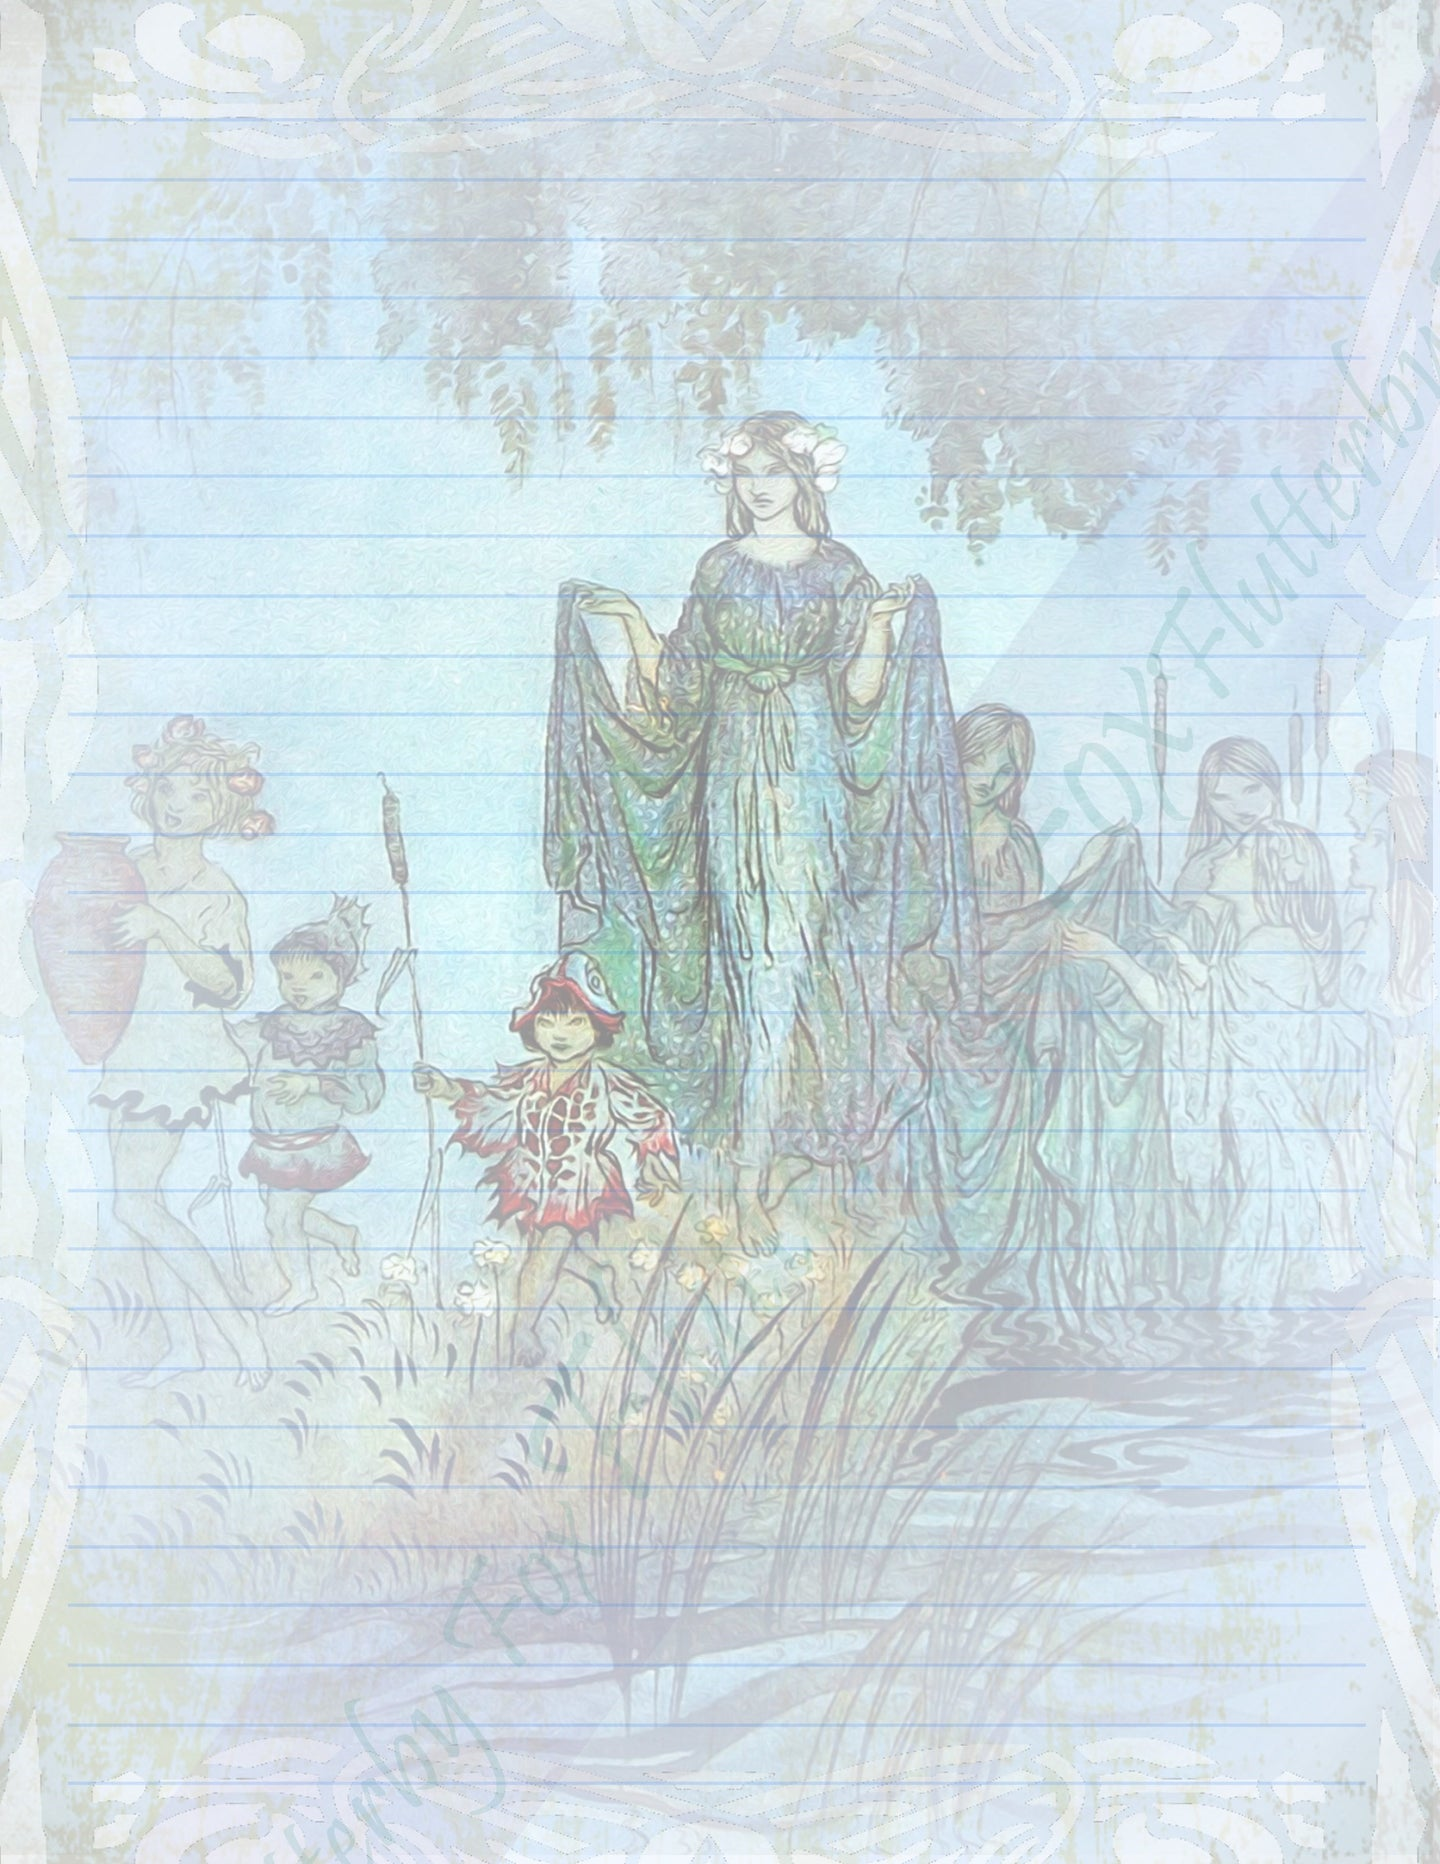 Titania's March of the Fairies